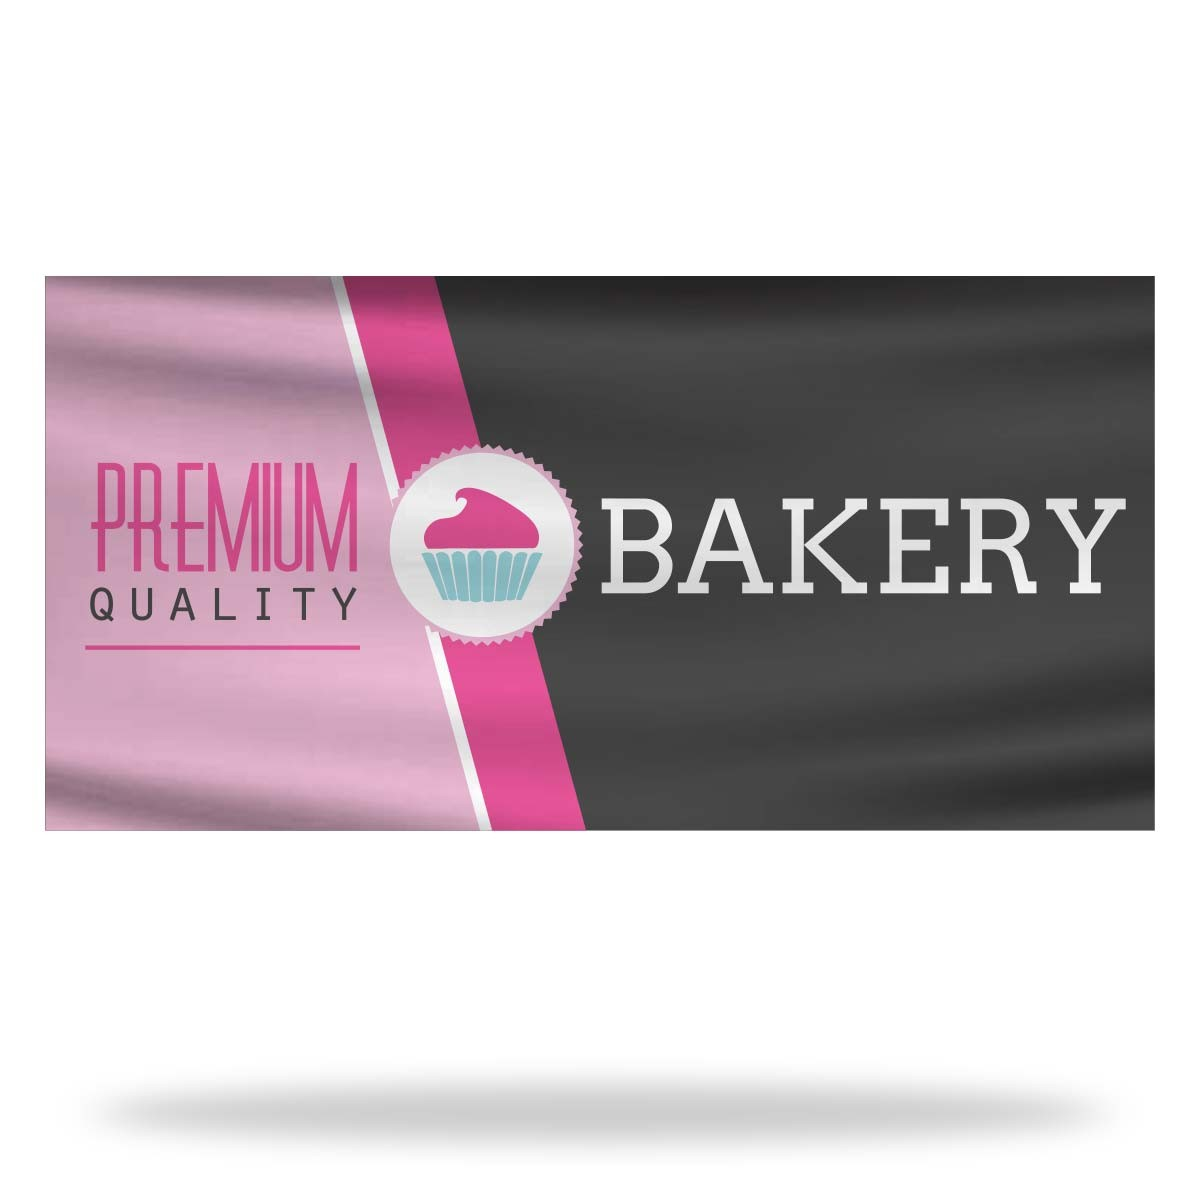 Bakery Flags & Banners Design 02